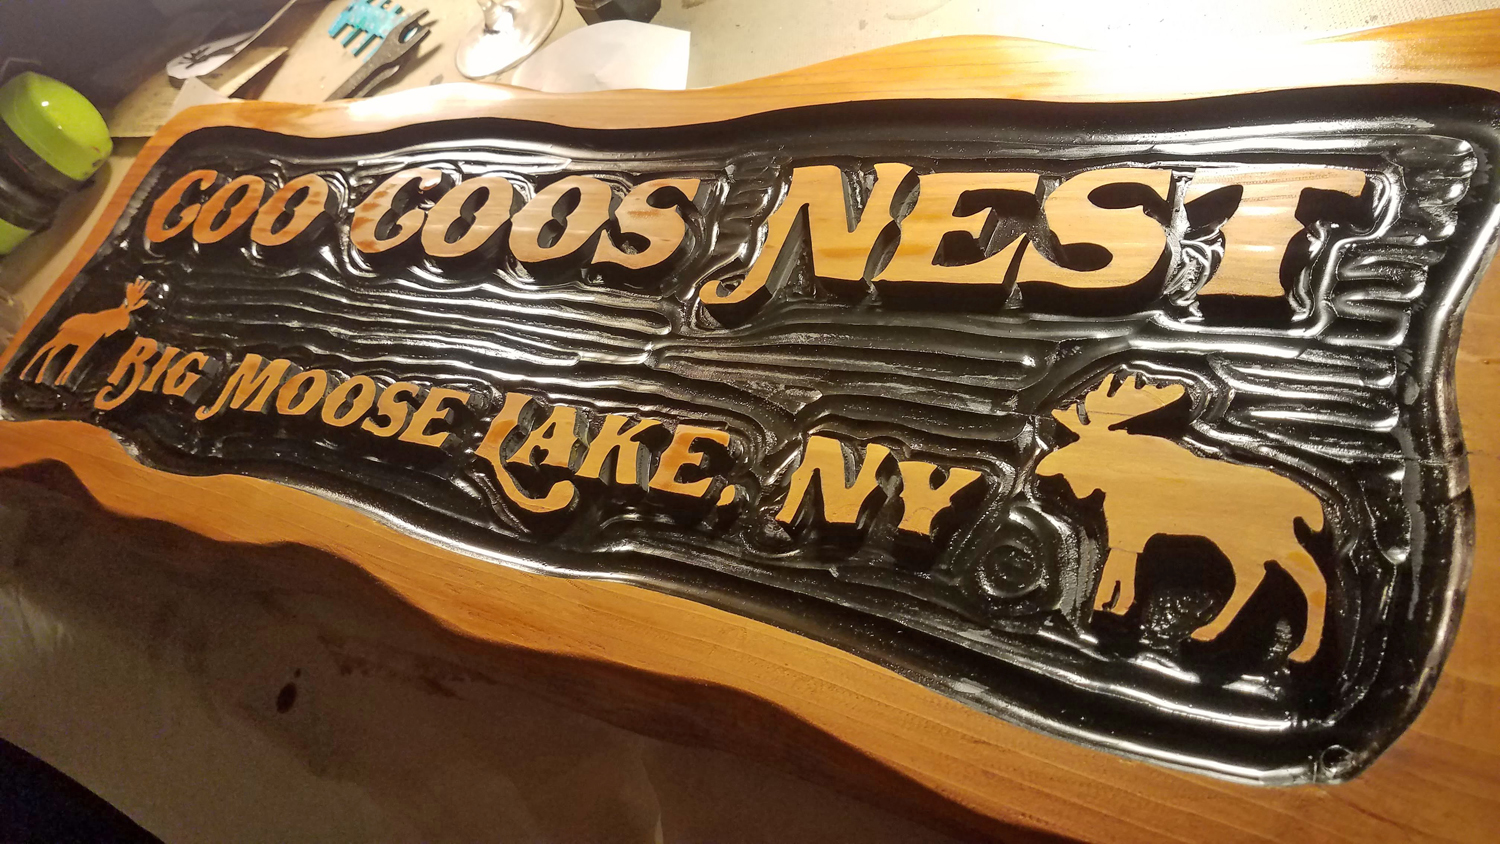 Jim Thomson of Adirondack Jim's created a sign for the Coo Coos Nest using premium western cedar and implementing the shop's signature relief carving.